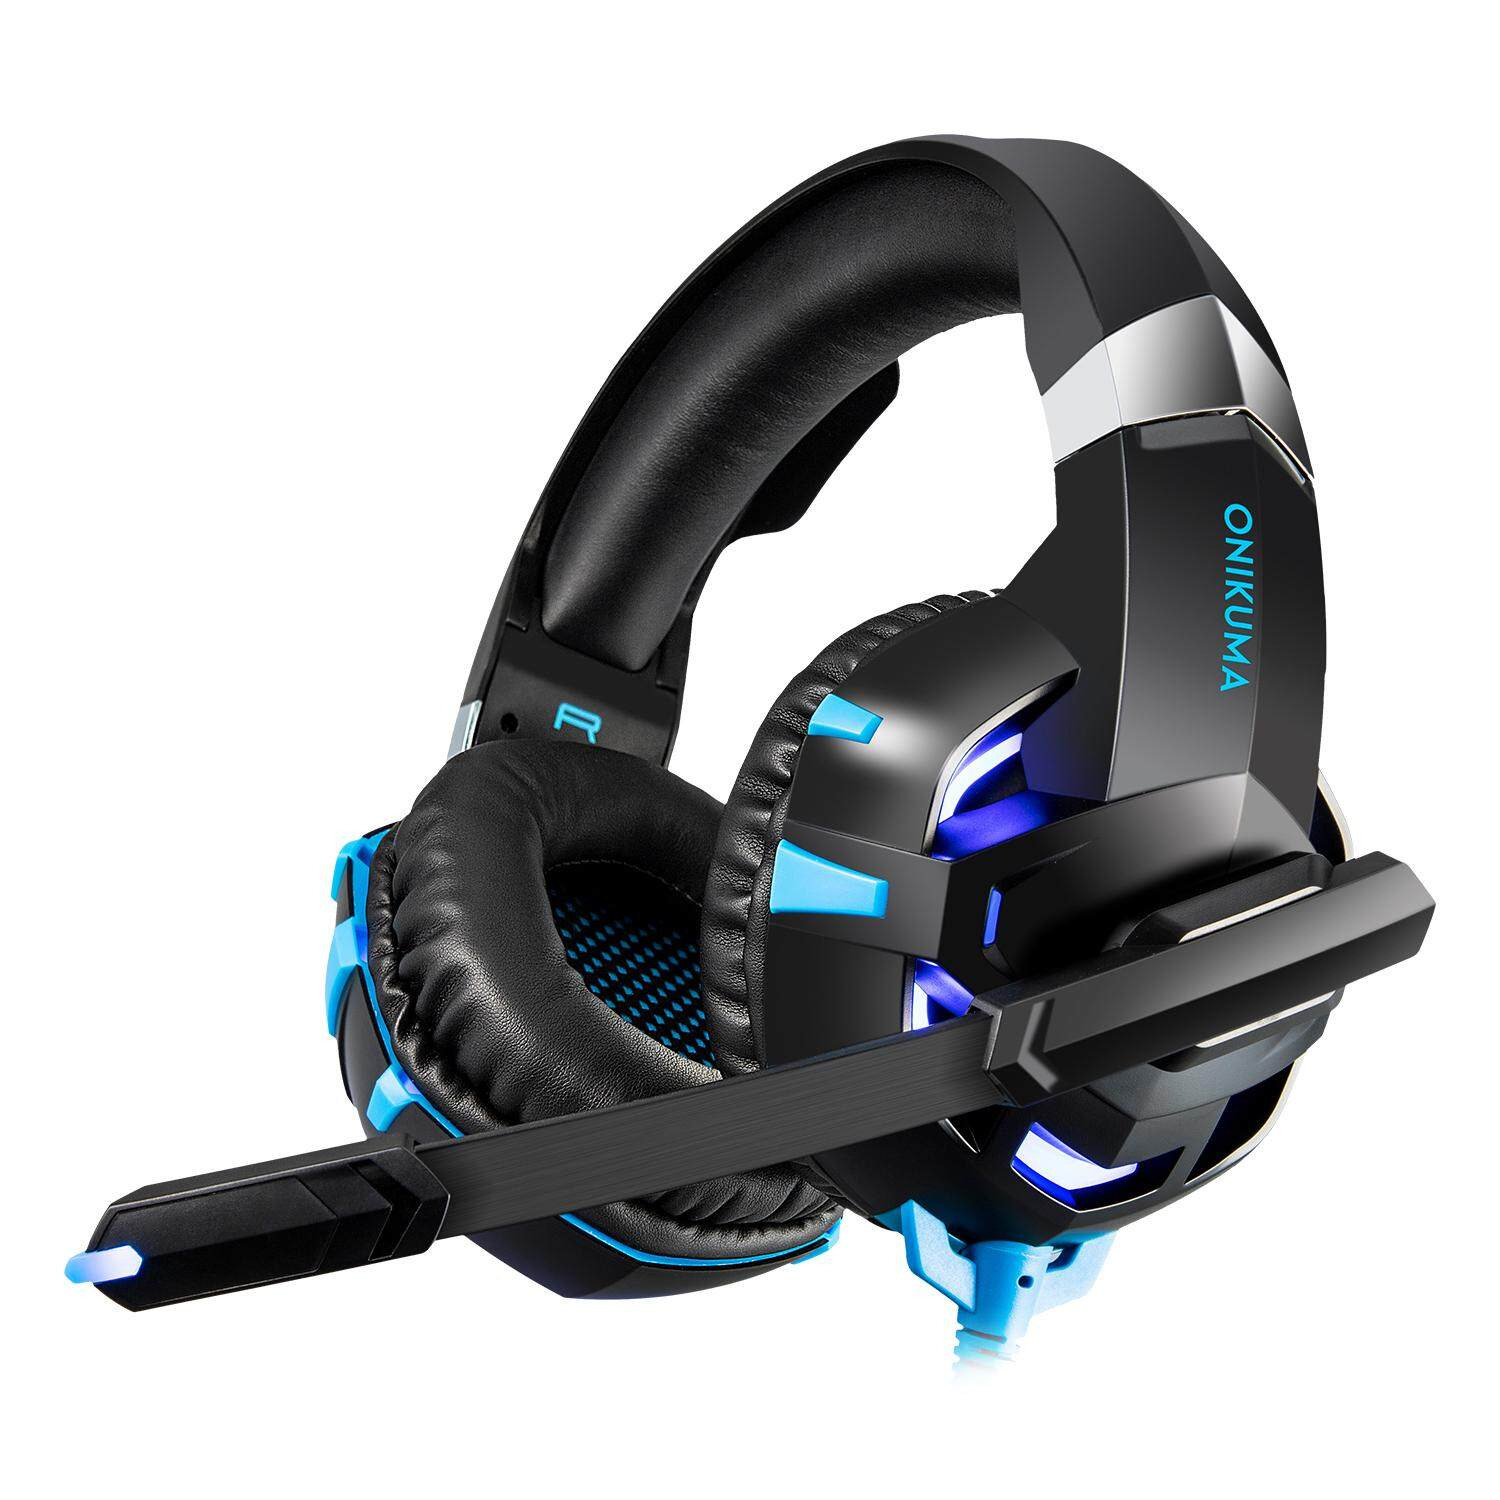 【Free Shipping + Flash Deal】ONIKUMA K2A Gaming Headset Headphone Bass Surround Sound with LED light & Microphone for PC Computer Laptop Tablet Phone